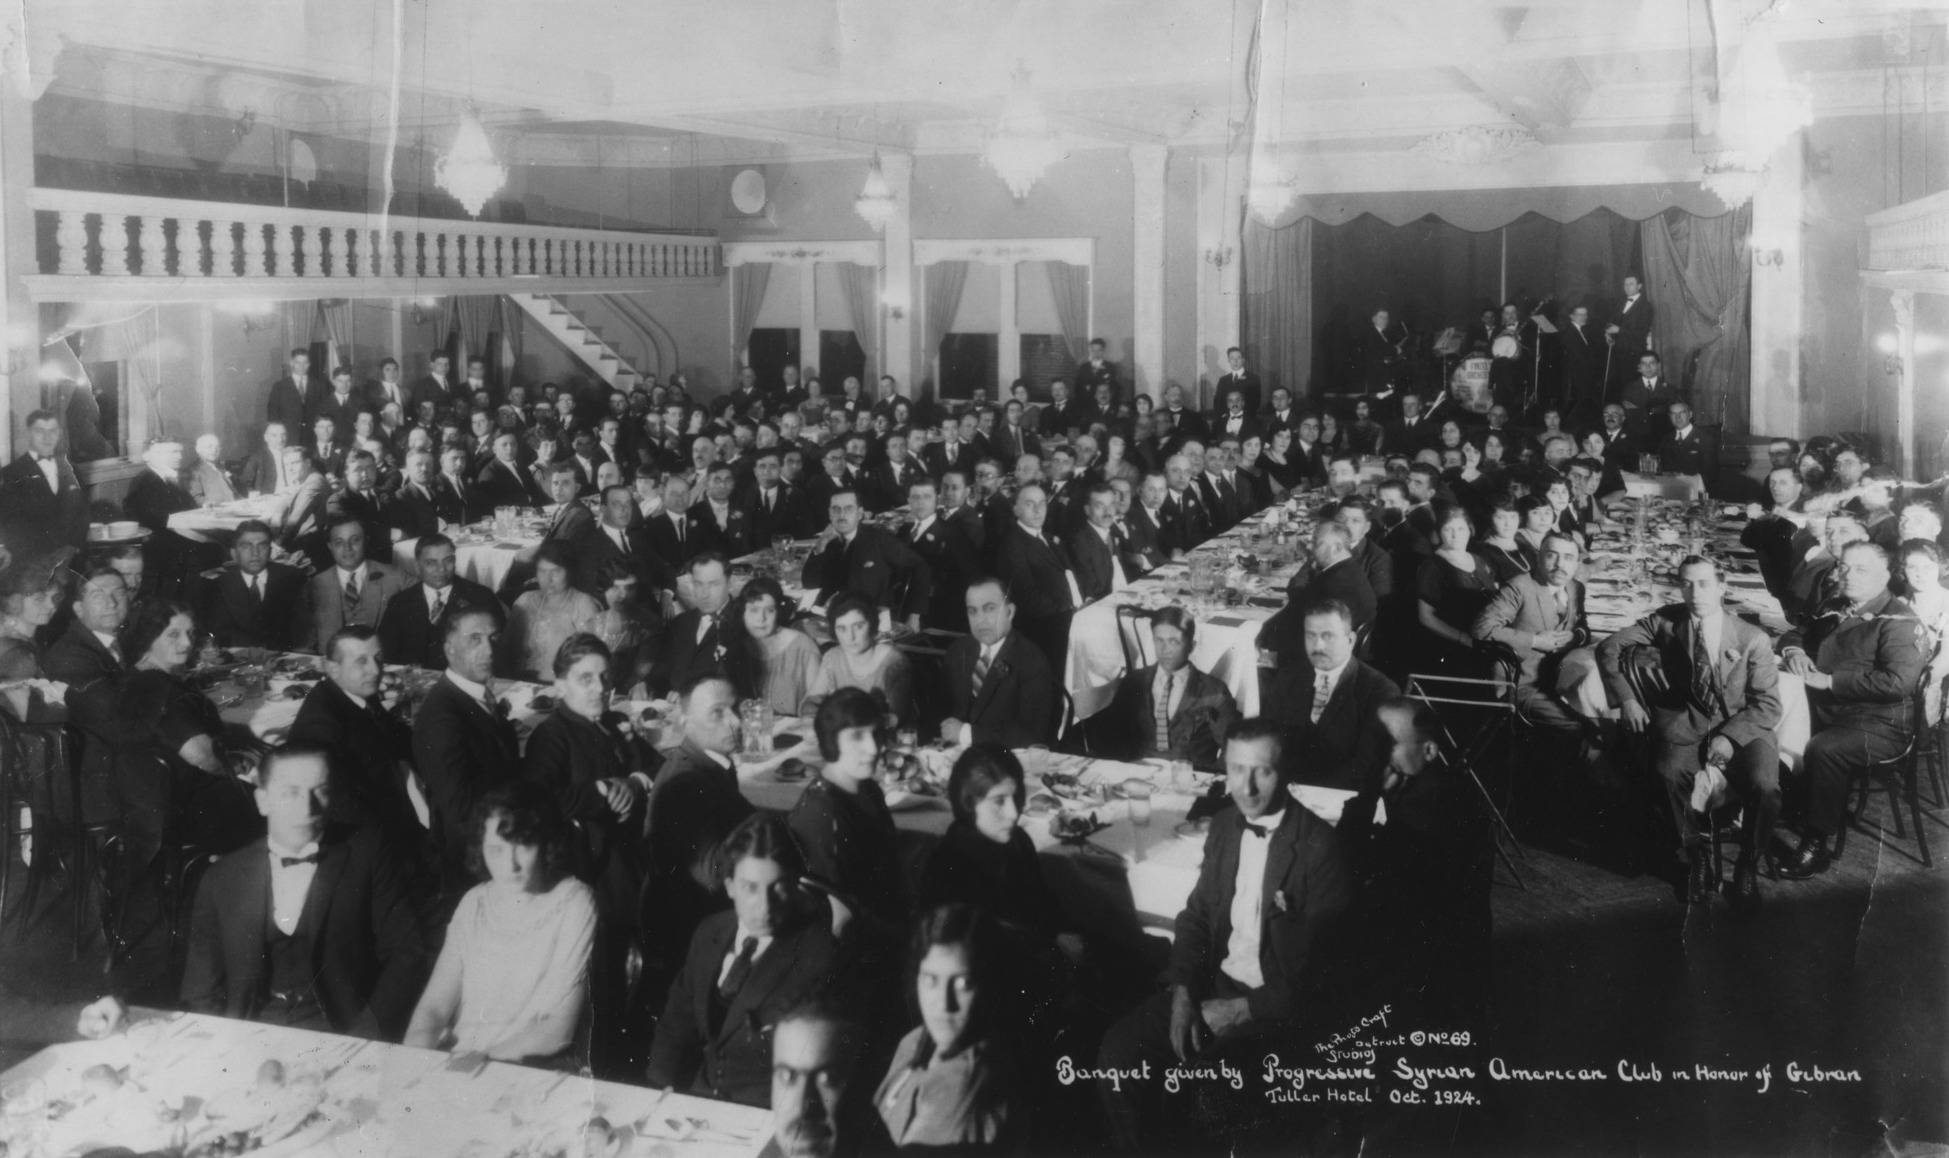 Banquet given by Progressive Syrian American Club in honor of Khalil Gibran October 1924 Smithsonian Institution